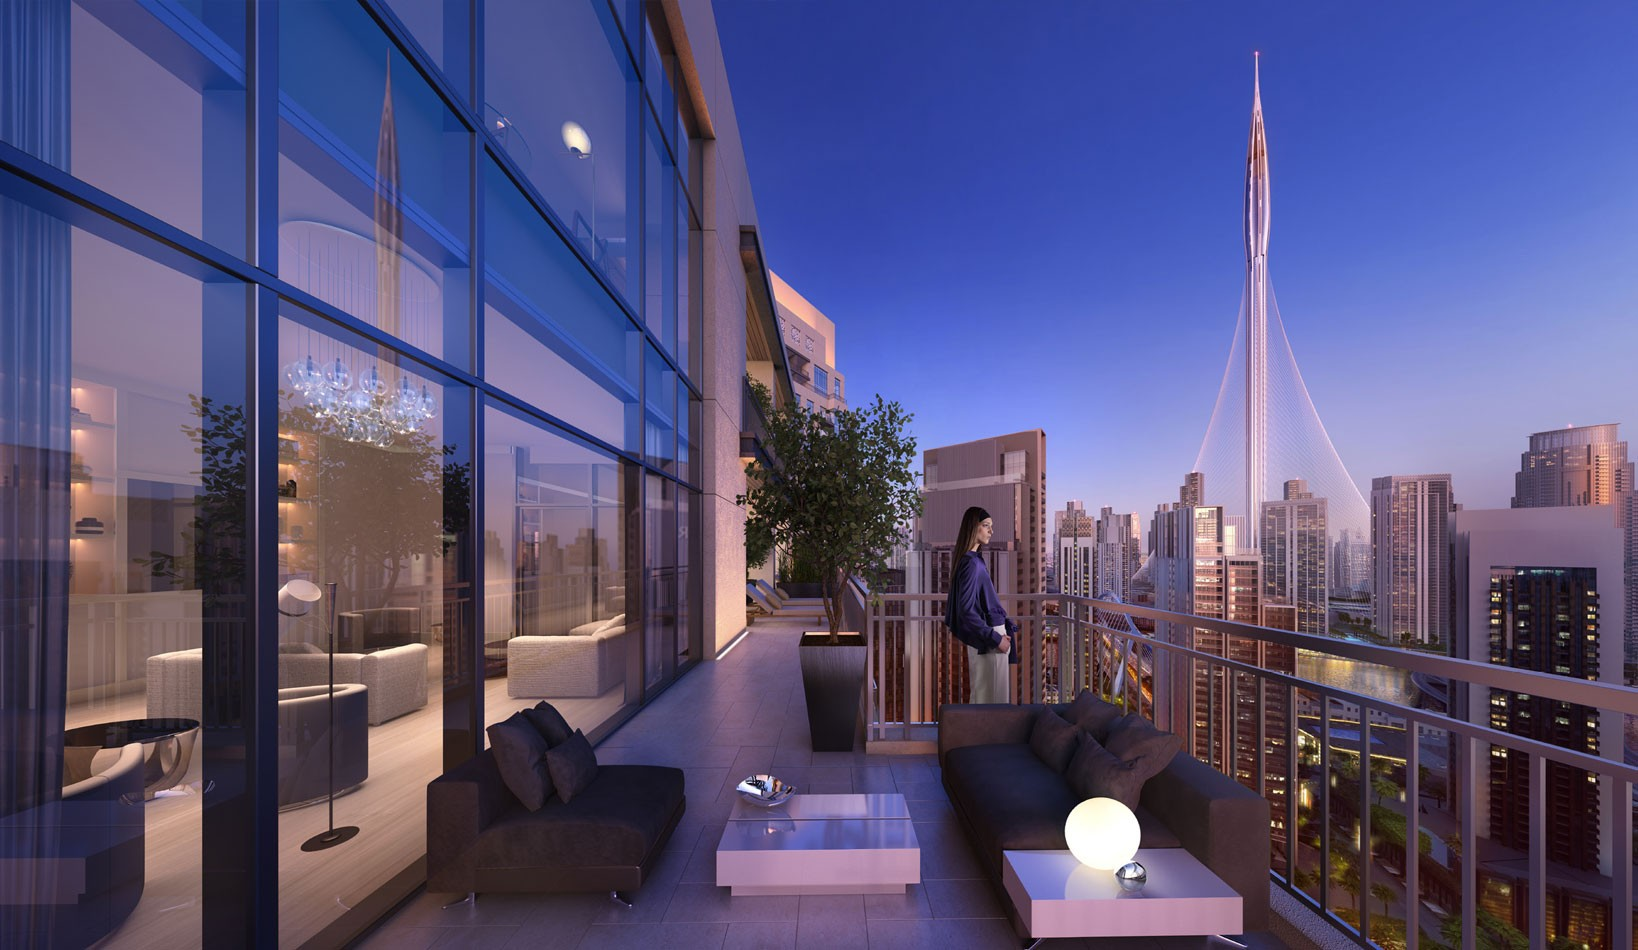 Property for Sale in Dubai Creek Harbour, Dubai Creek Harbour, Dubai, United Arab Emirates